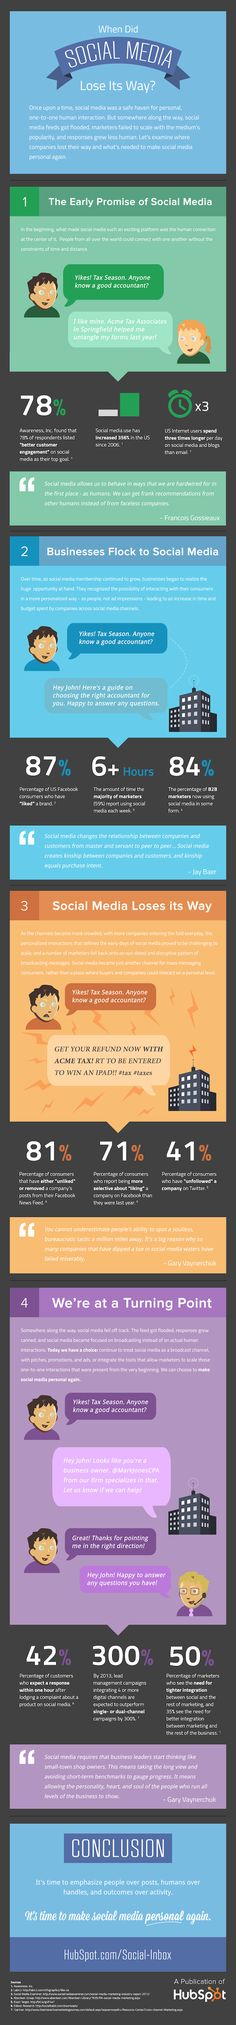 Has Social Media Marketing Lost Its Way?